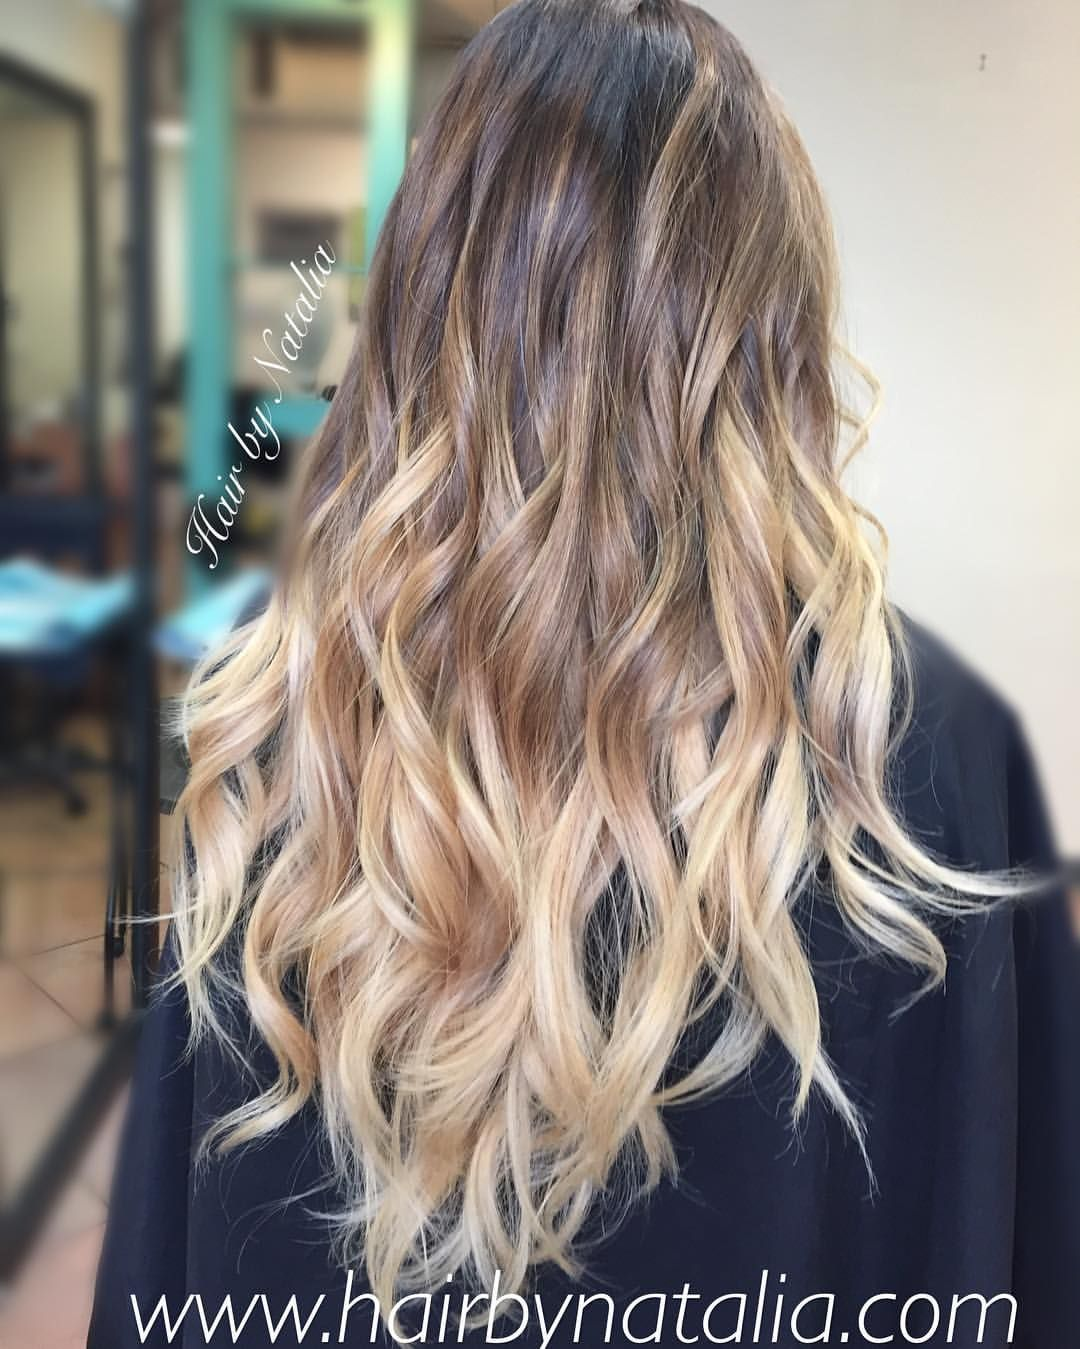 blonde balayage ombre balayage in denver balayage. Black Bedroom Furniture Sets. Home Design Ideas